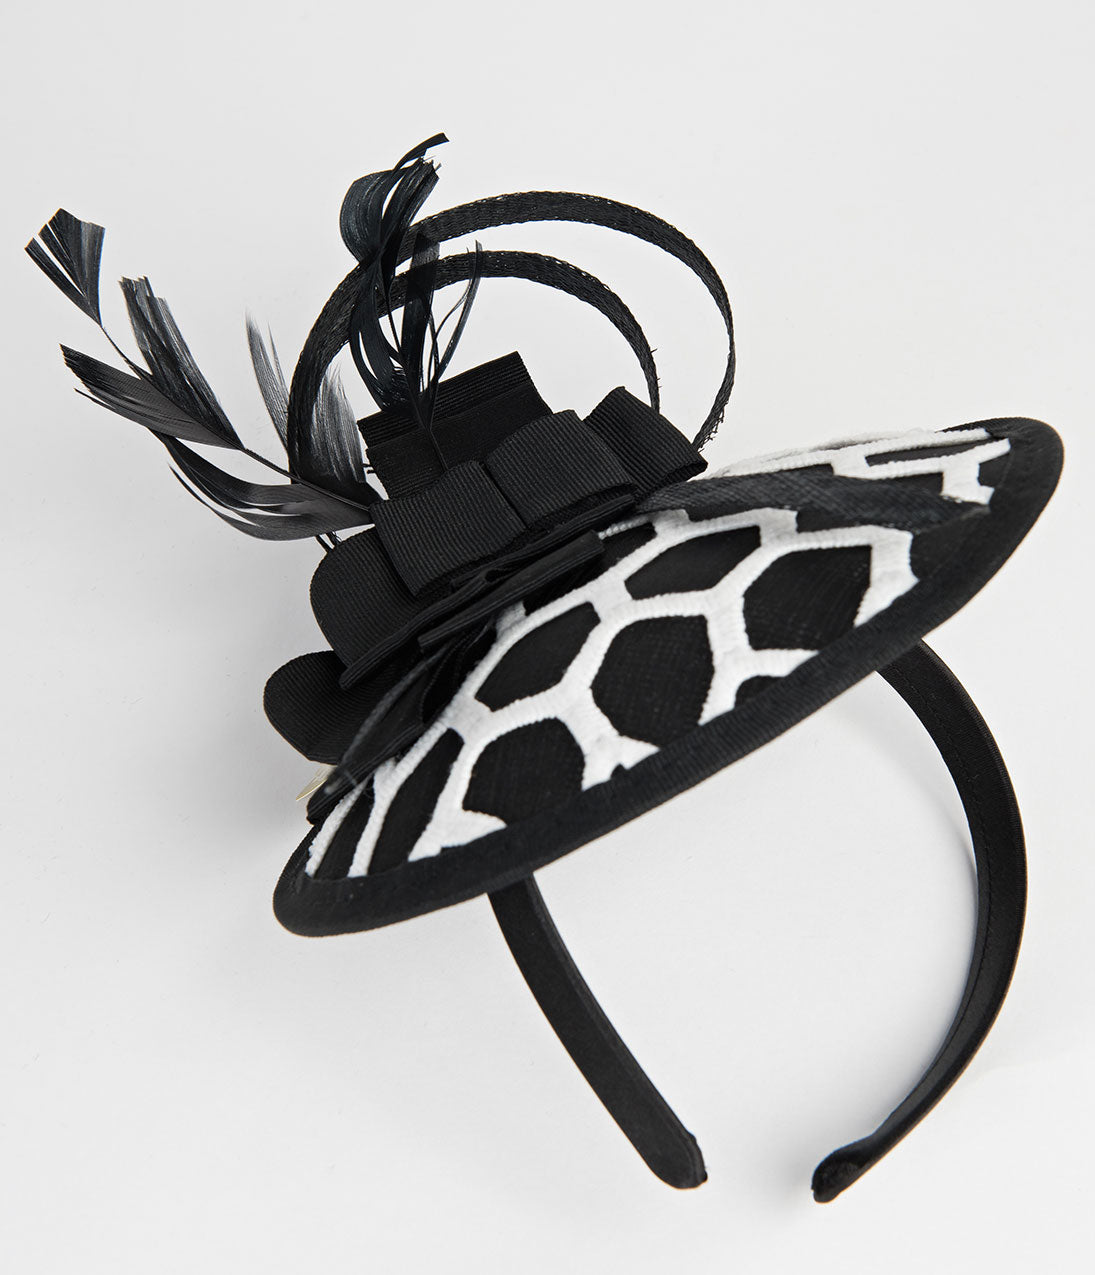 Women's Vintage Hats | Old Fashioned Hats | Retro Hats Black  White Honeycomb Embroidered Sinamay Fascinator $42.00 AT vintagedancer.com